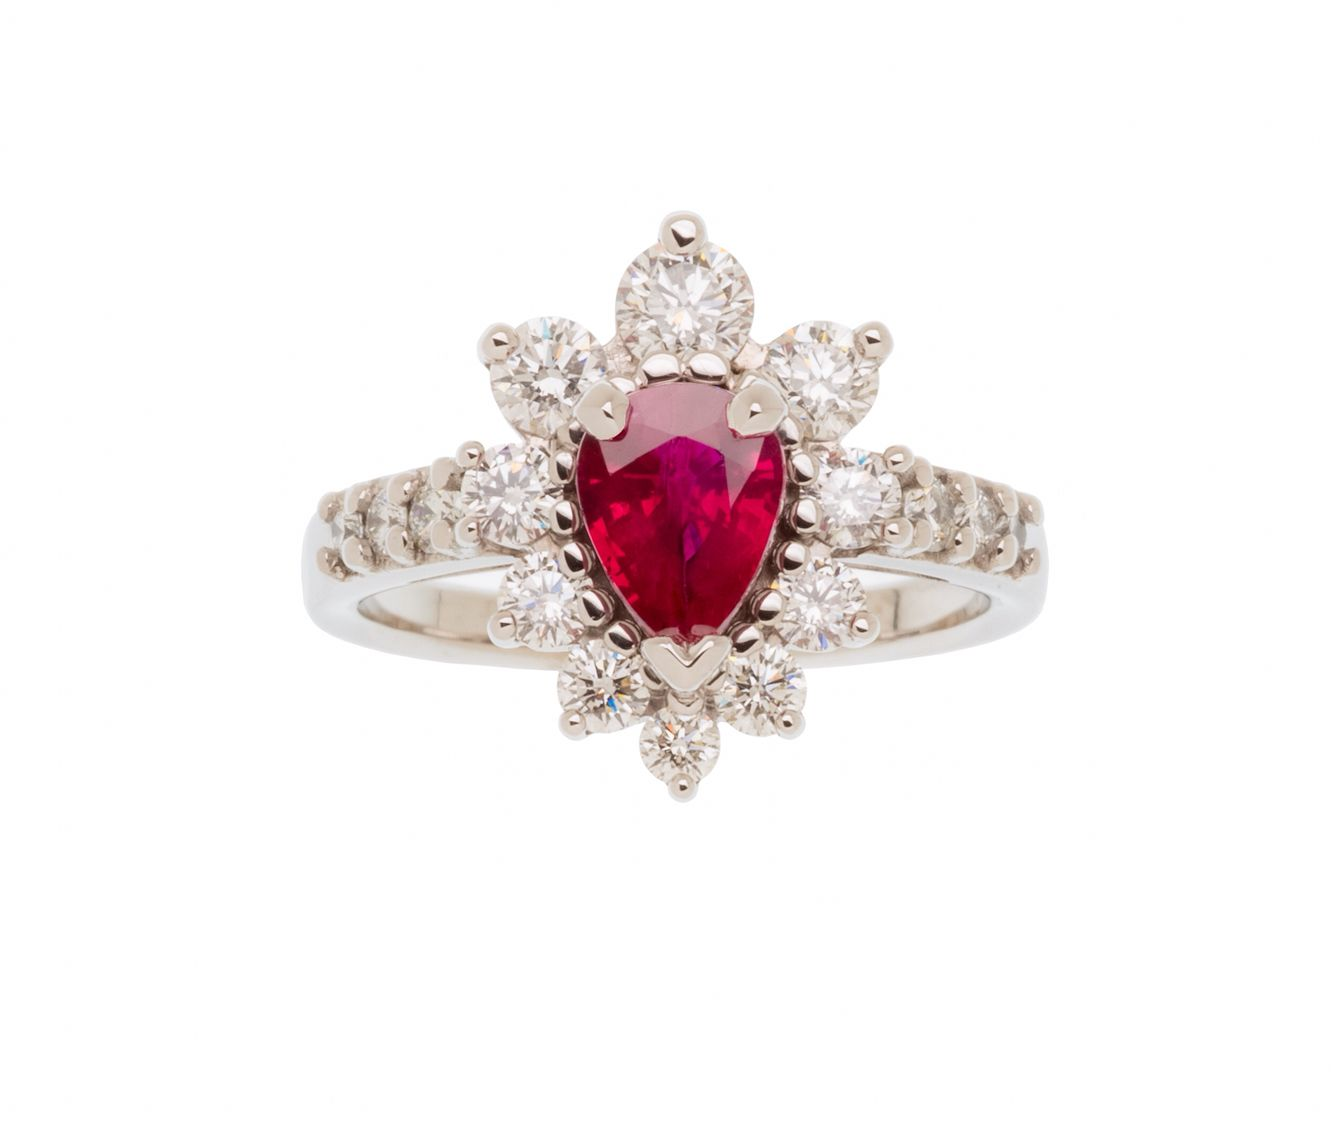 Pierre rey custome made pear shaped blood pigeon ruby engagement